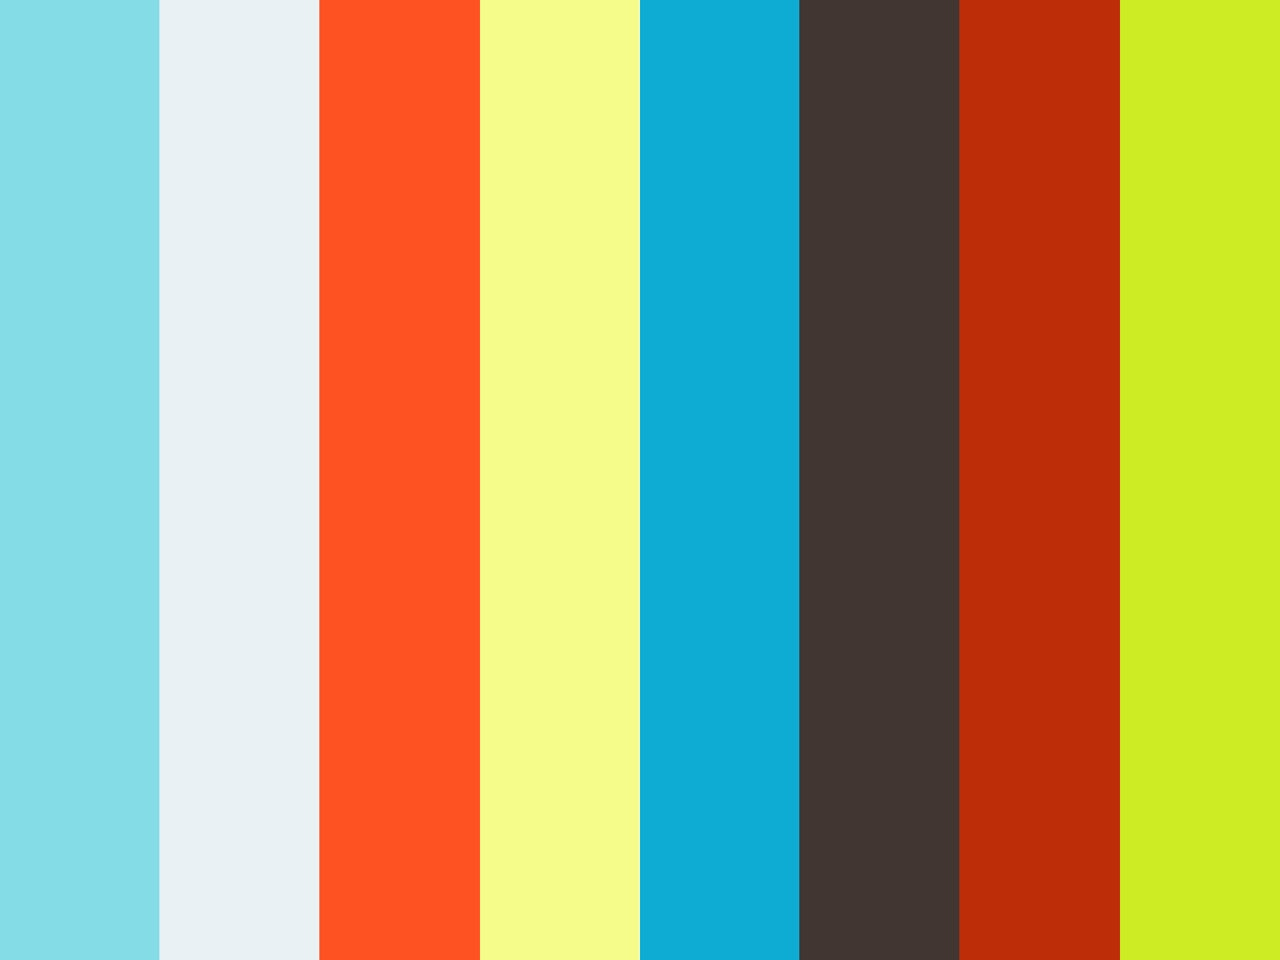 best arcade game ever